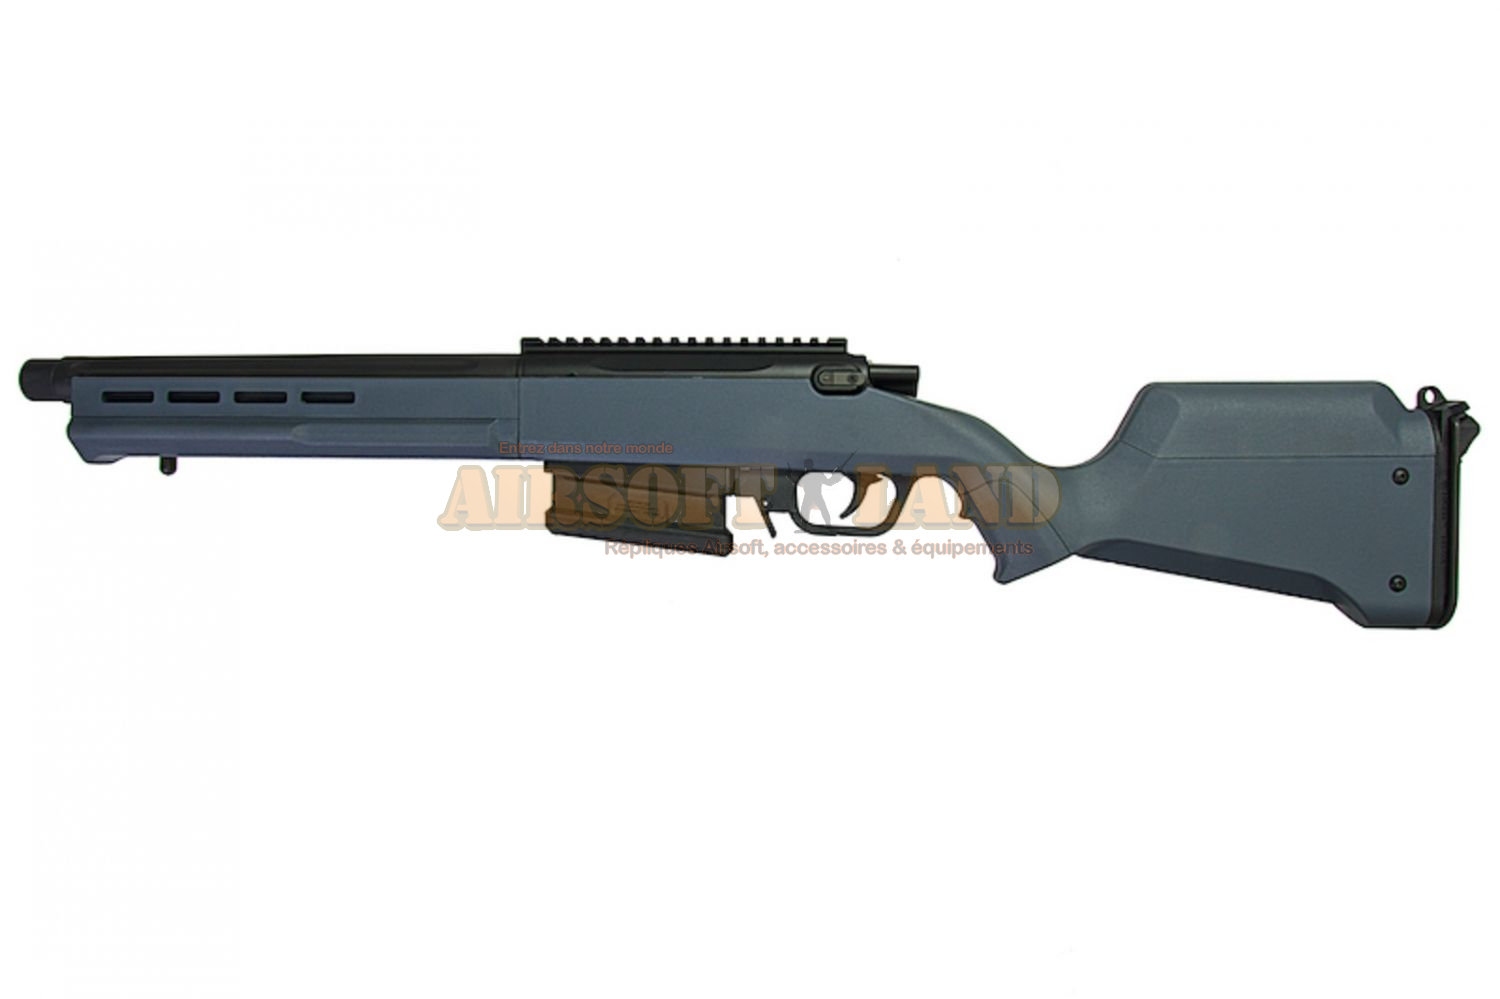 ARES Amoeba STRIKER S2 urban grey